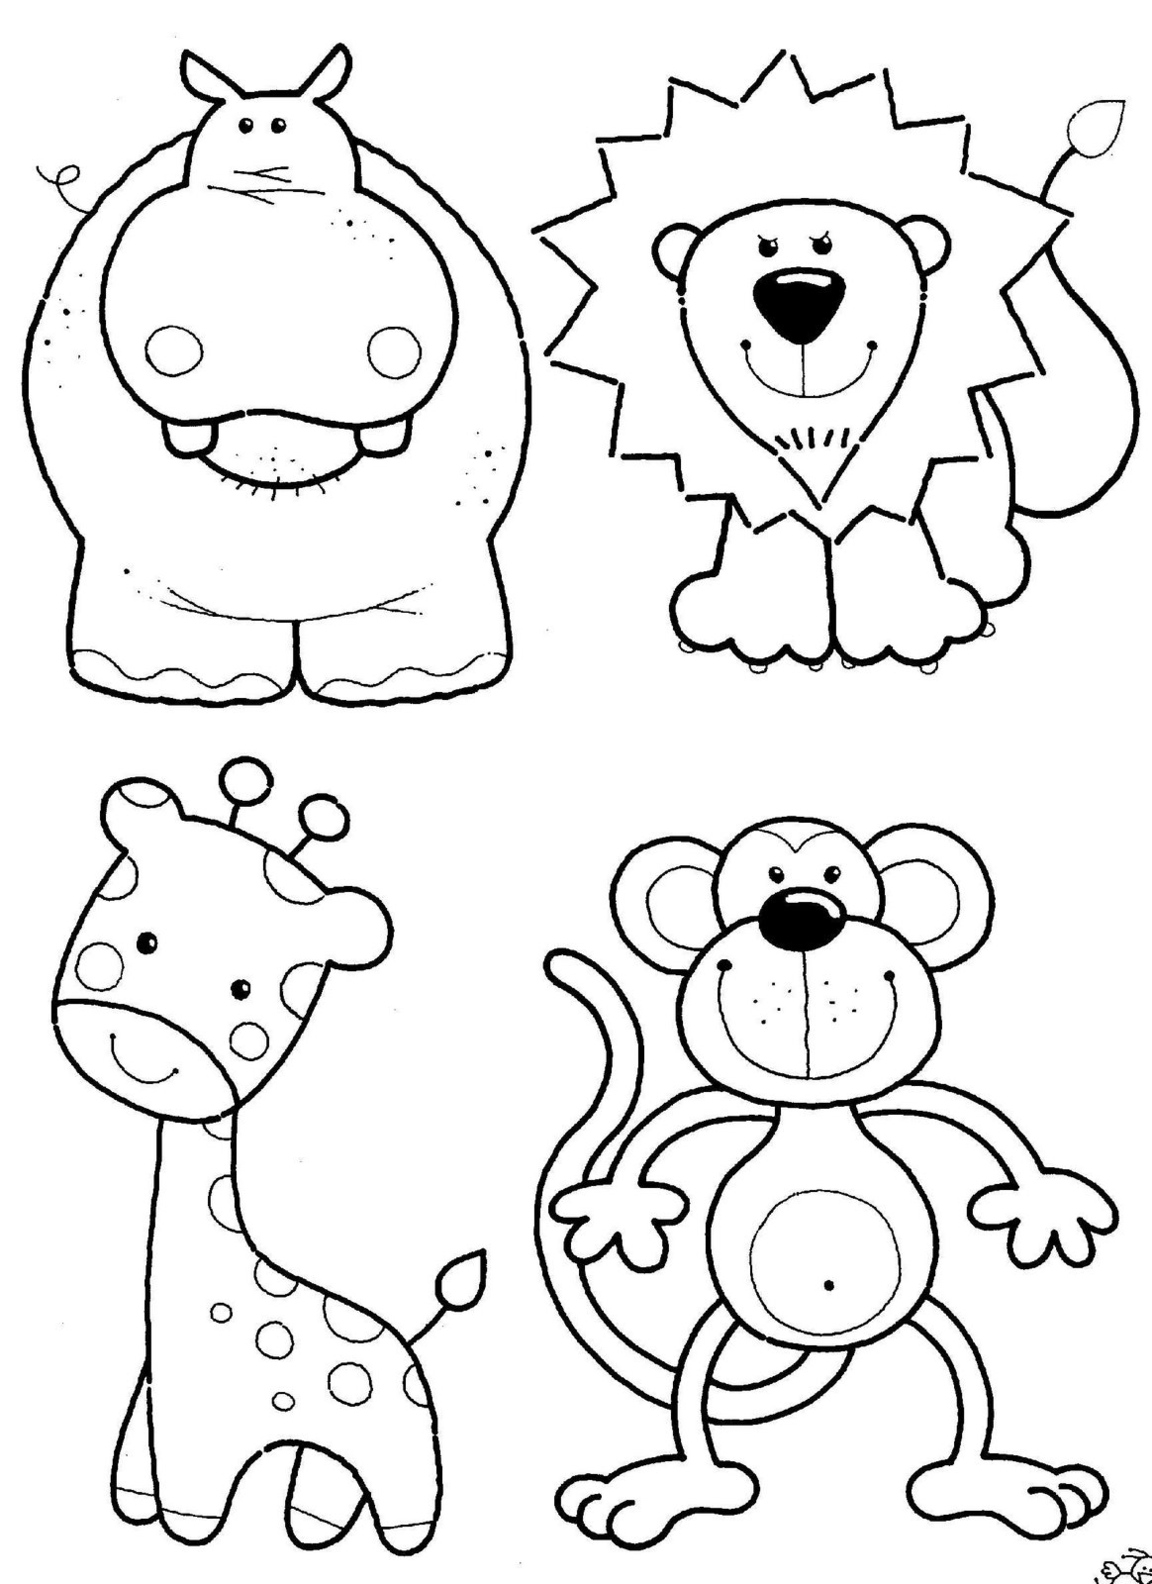 animal coloring book pages cartoon animal coloring pages to download and print for free pages coloring animal book